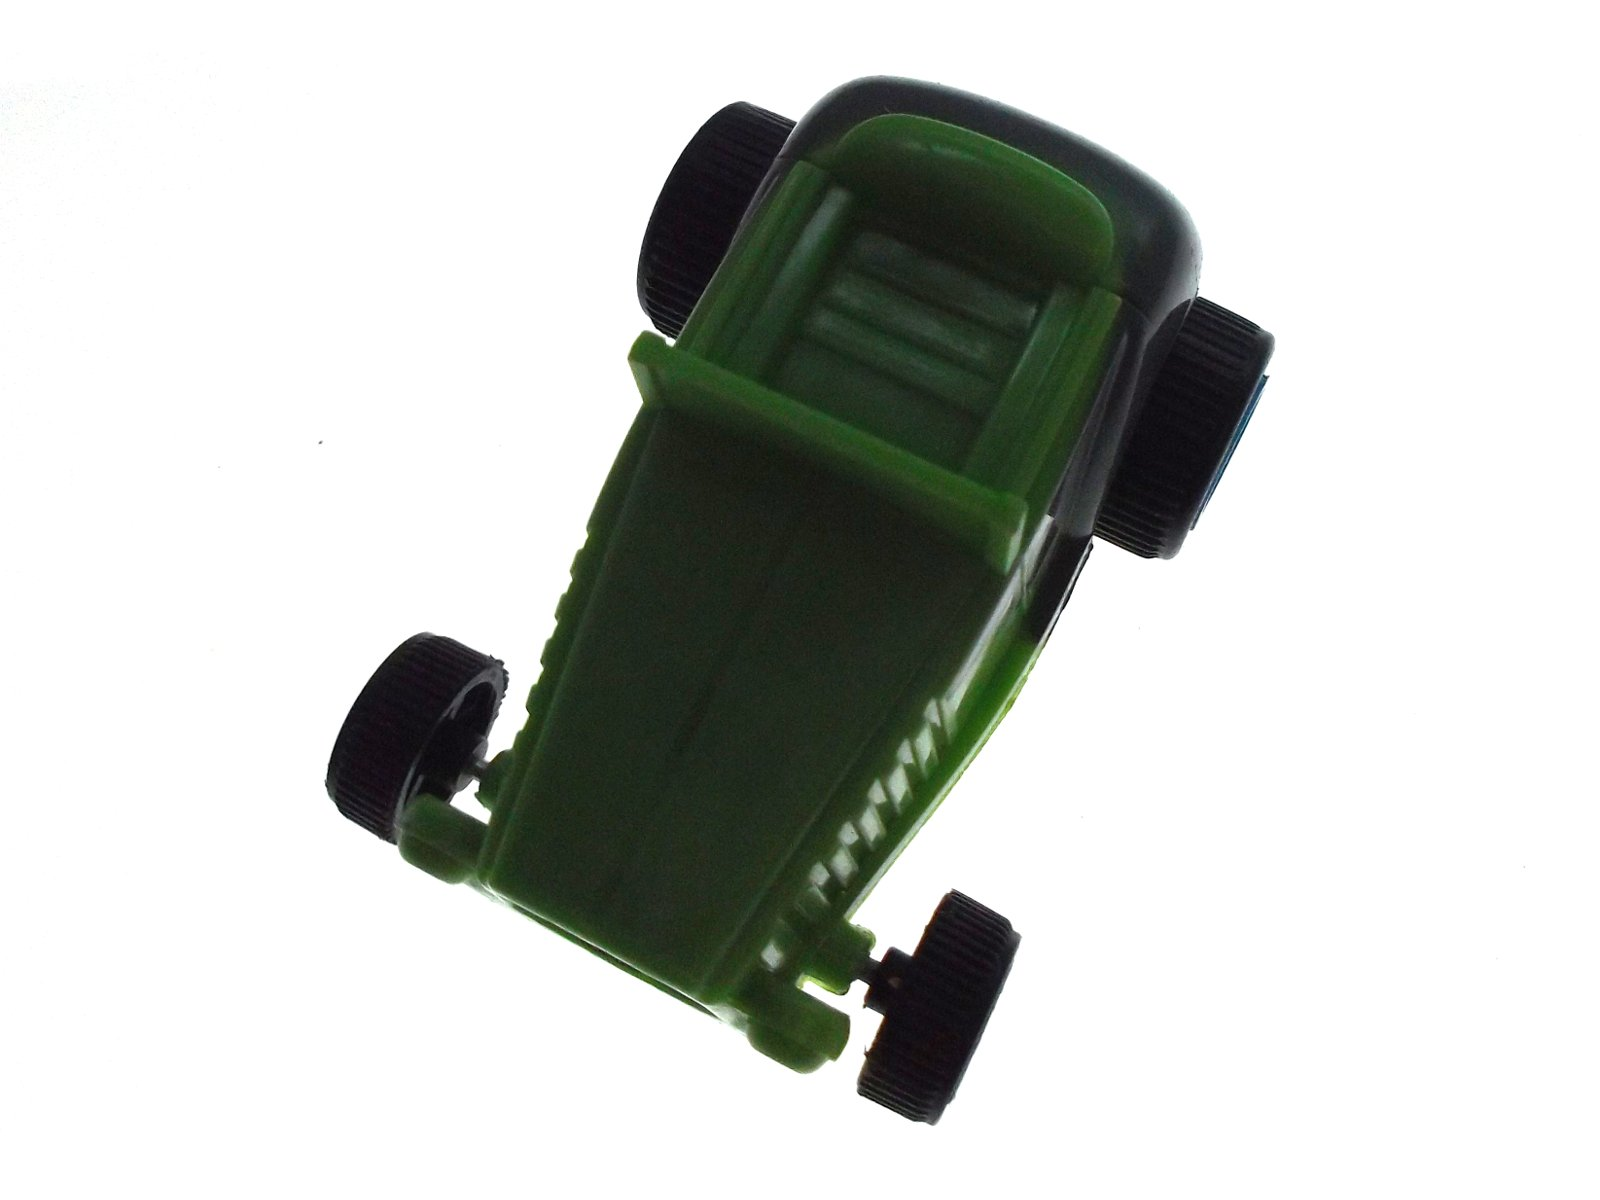 Green toy car, Auto, Speed, New, Over, HQ Photo